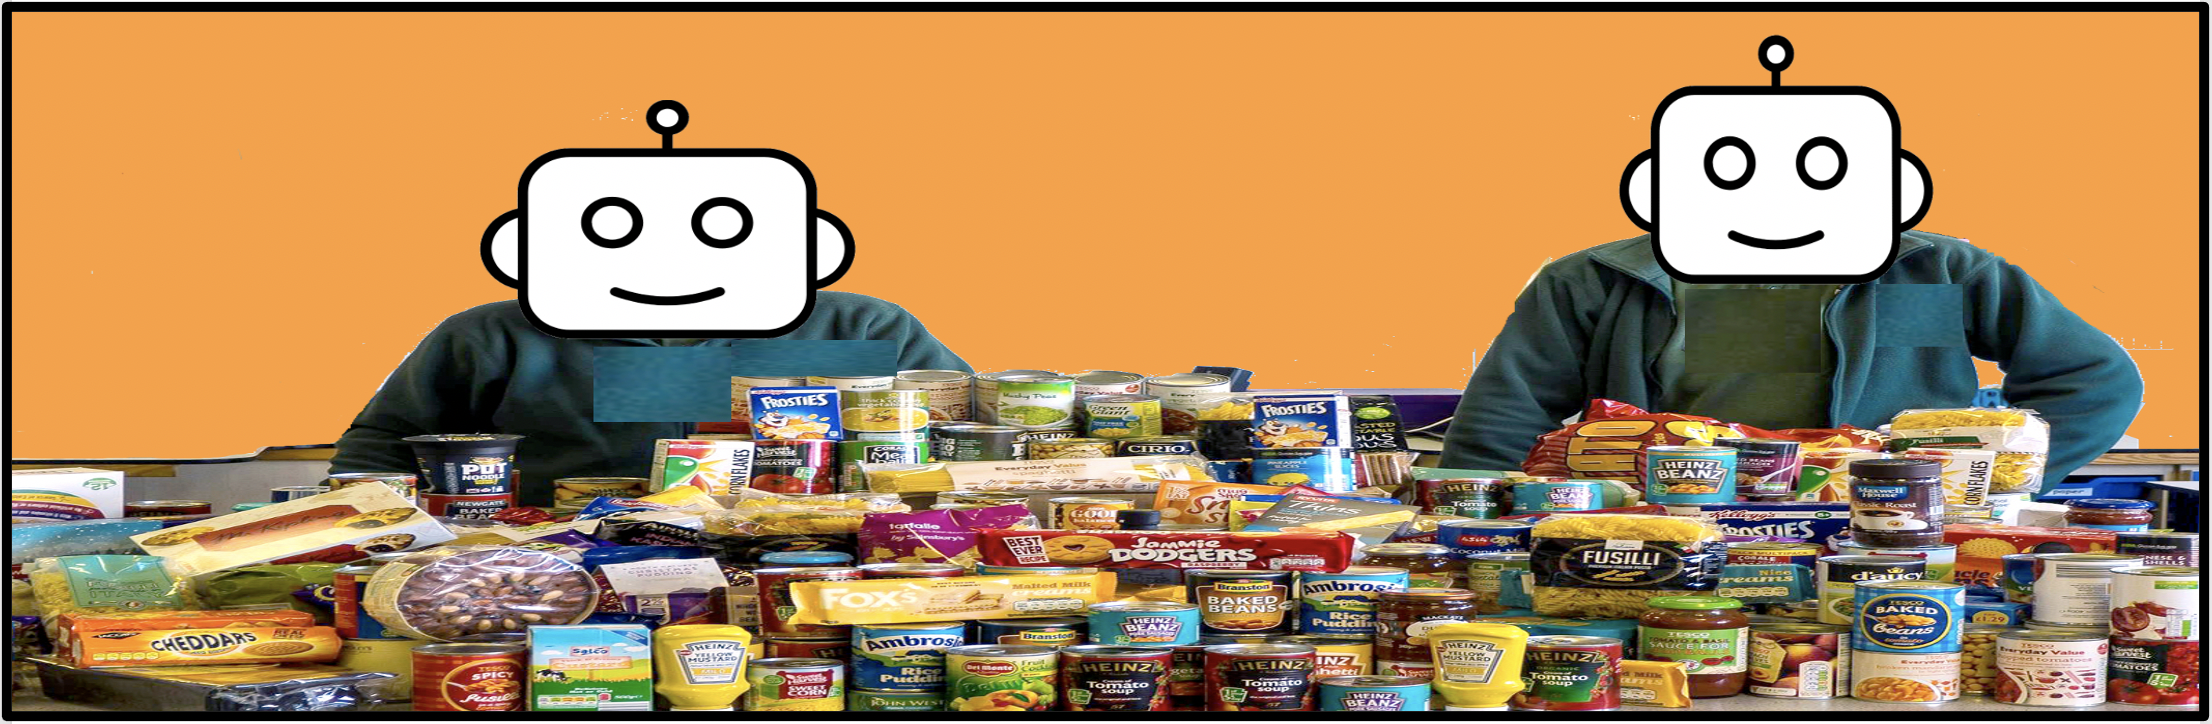 Infobots direct the needy to foodbanks and build contact lists at the same time.